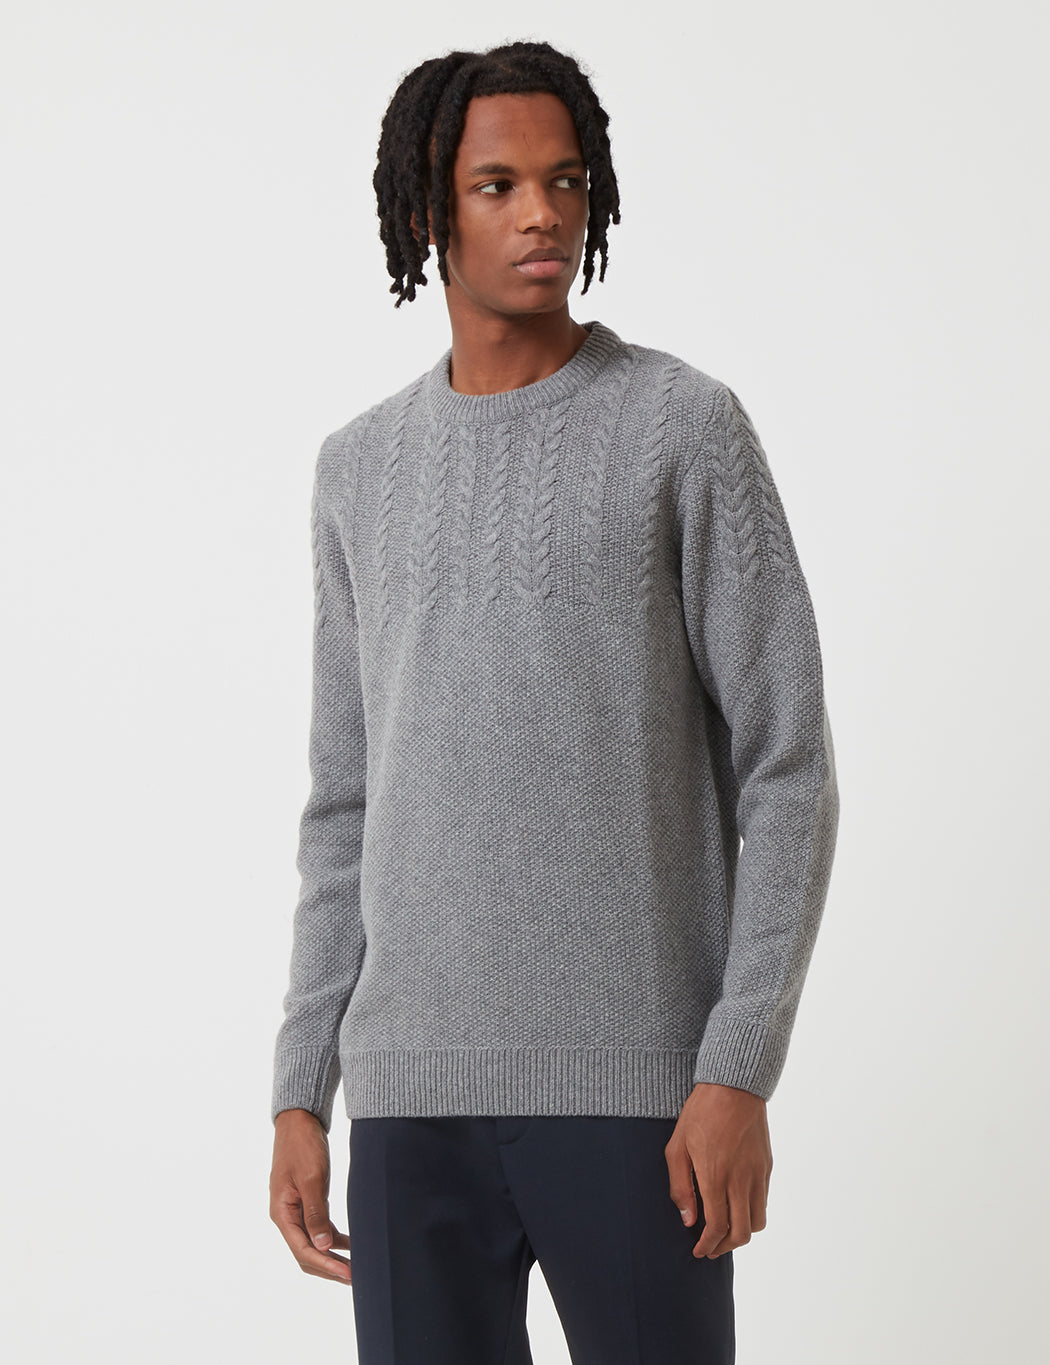 Barbour Crastill Cable Knit Sweatshirt - Grey Marl